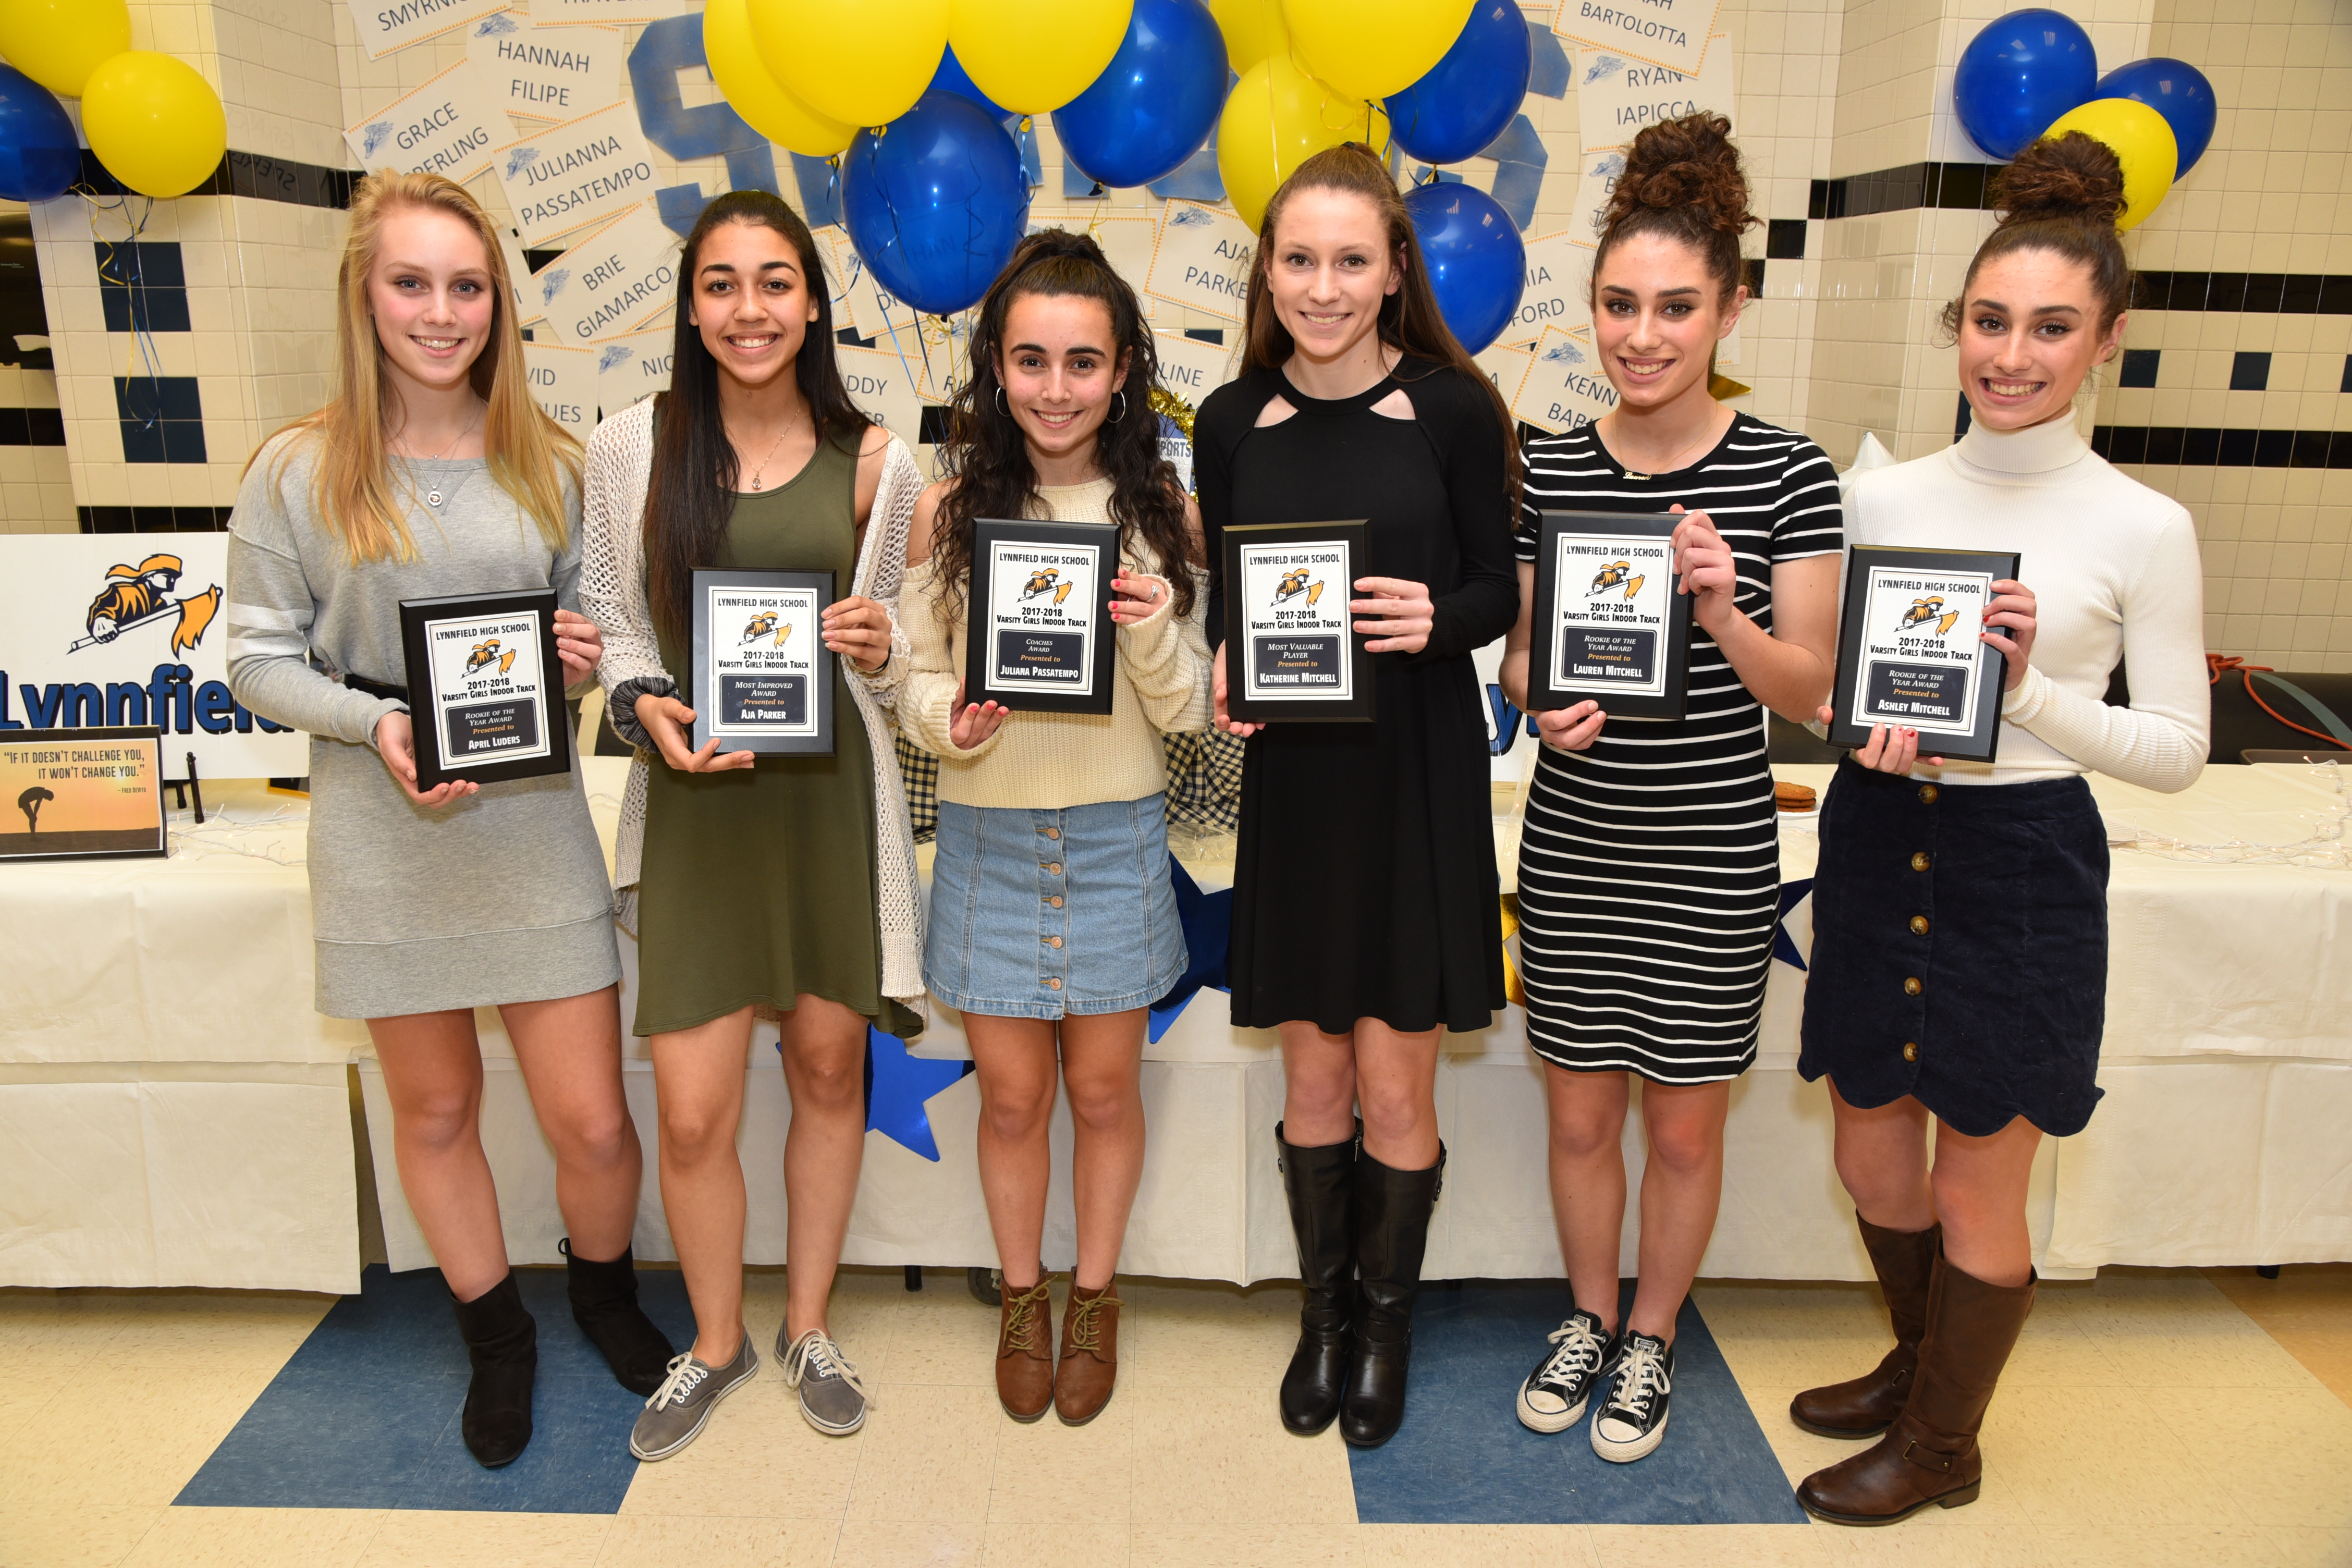 Varsity Girls Indoor Track Rookie of the Year April Luders, Most Improved Aja Parker, Coaches Award winner Juliana Passatempo, Most Valuable Player Katherine Mitchell, Rookie of the Year Lauren Mitchell, and Rookie of the Year Ashley Mitchell